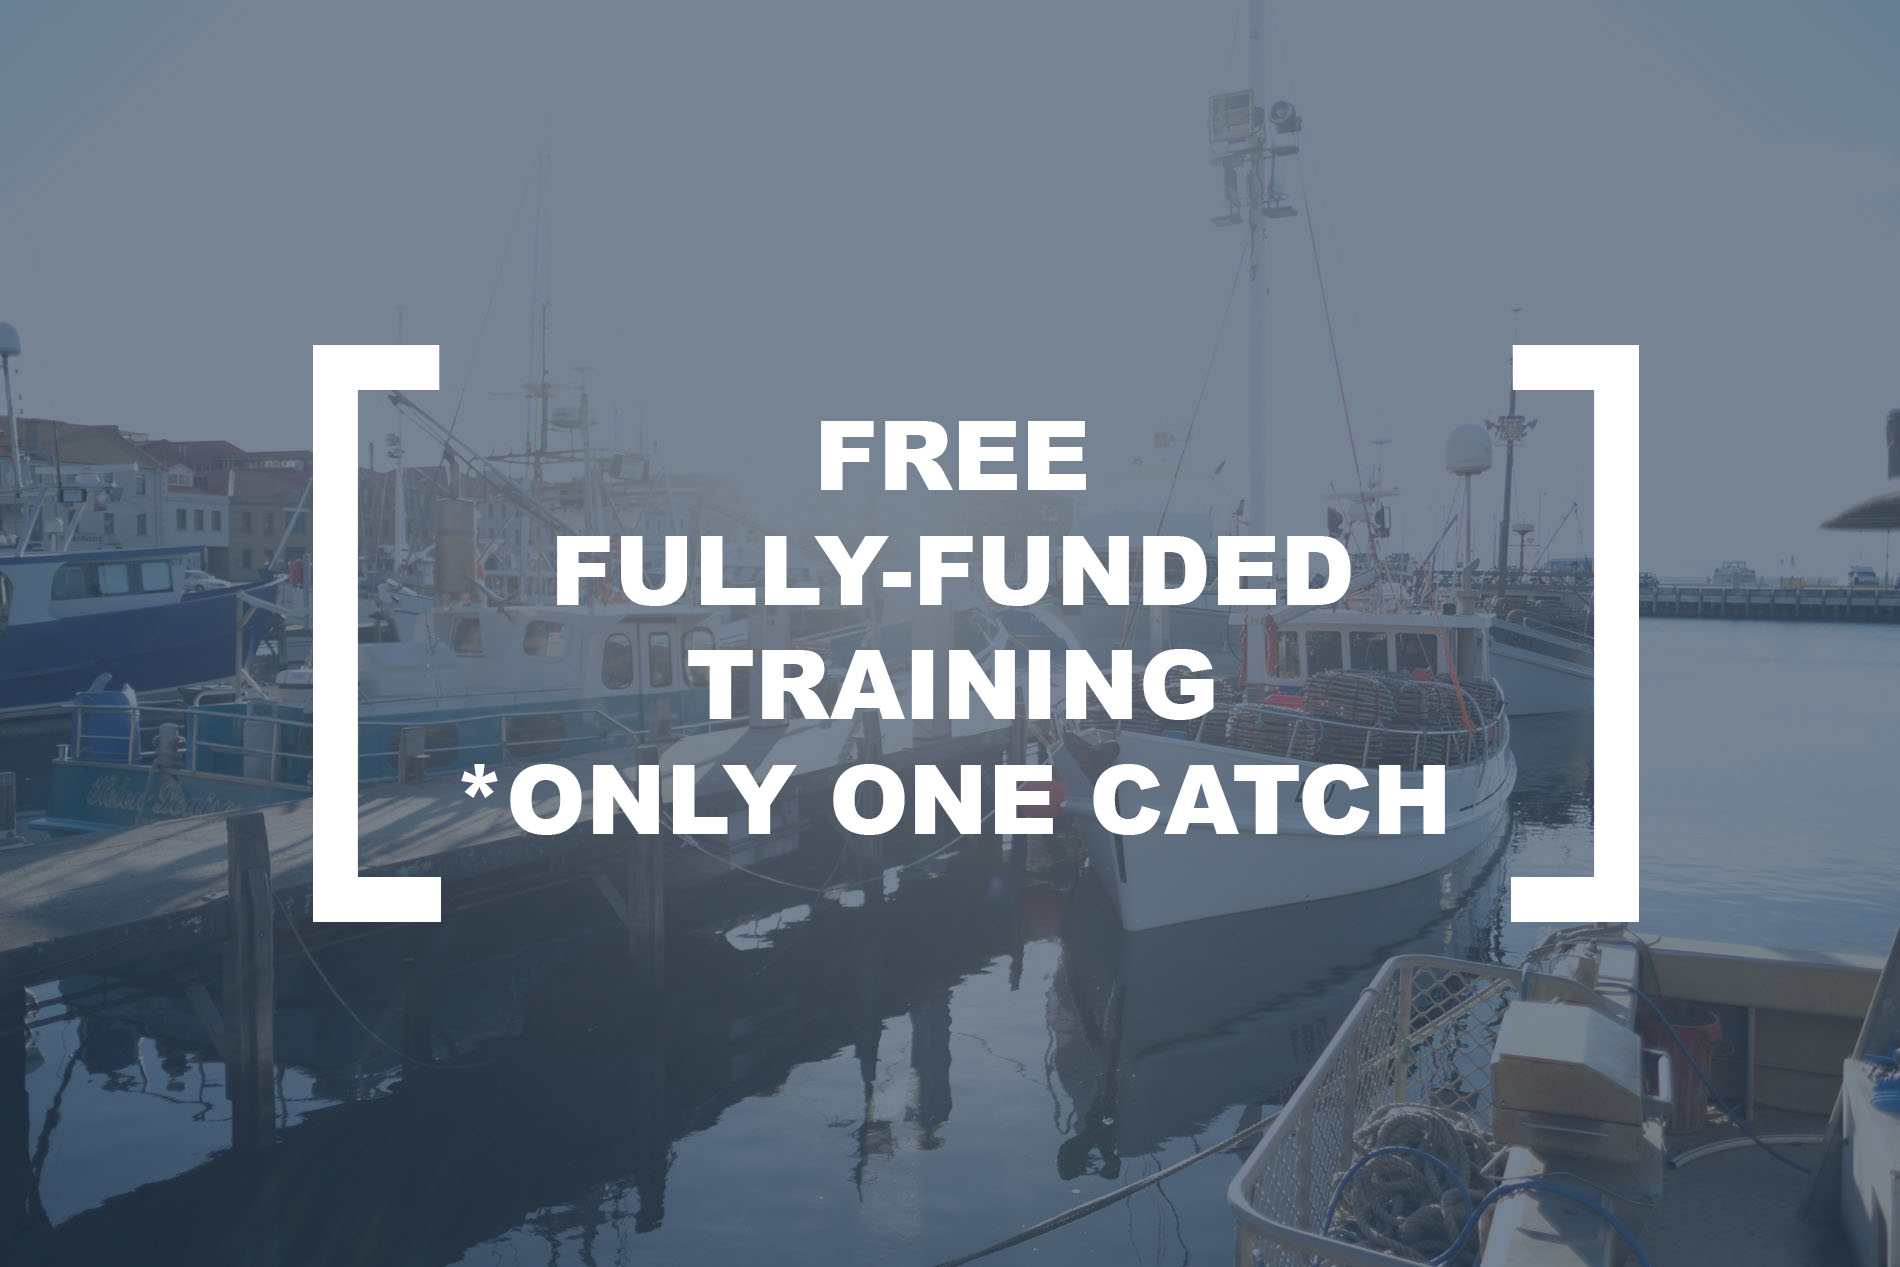 only-one-catch-seafood-maritime-training-ess-job-trainer